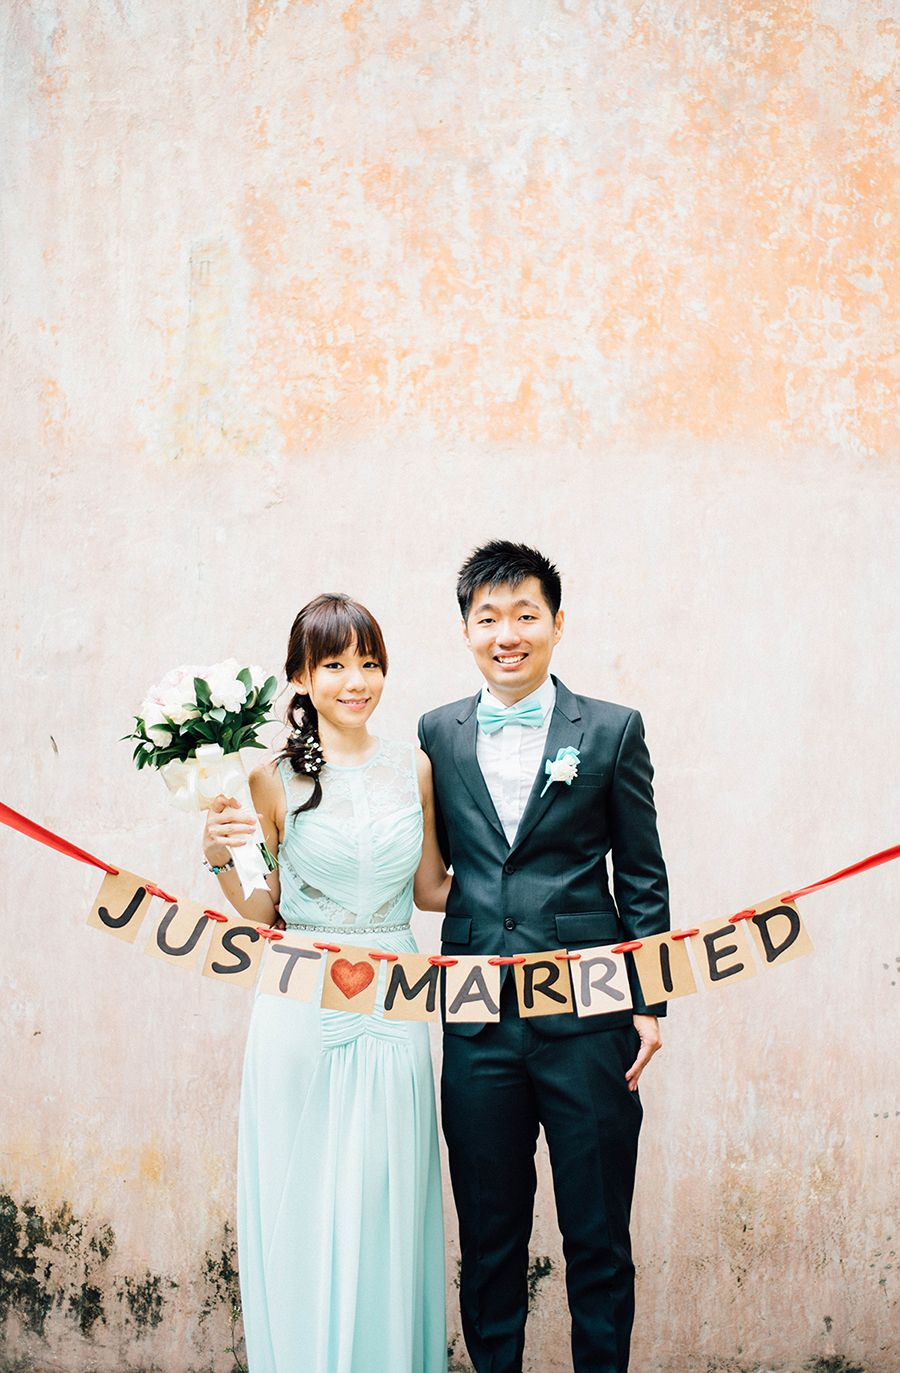 wedding reception photo booth singapore%0A Wedding garland    Gareth and Jia Le u    s Simple Solemnisation by Singapore u    s  Youngest